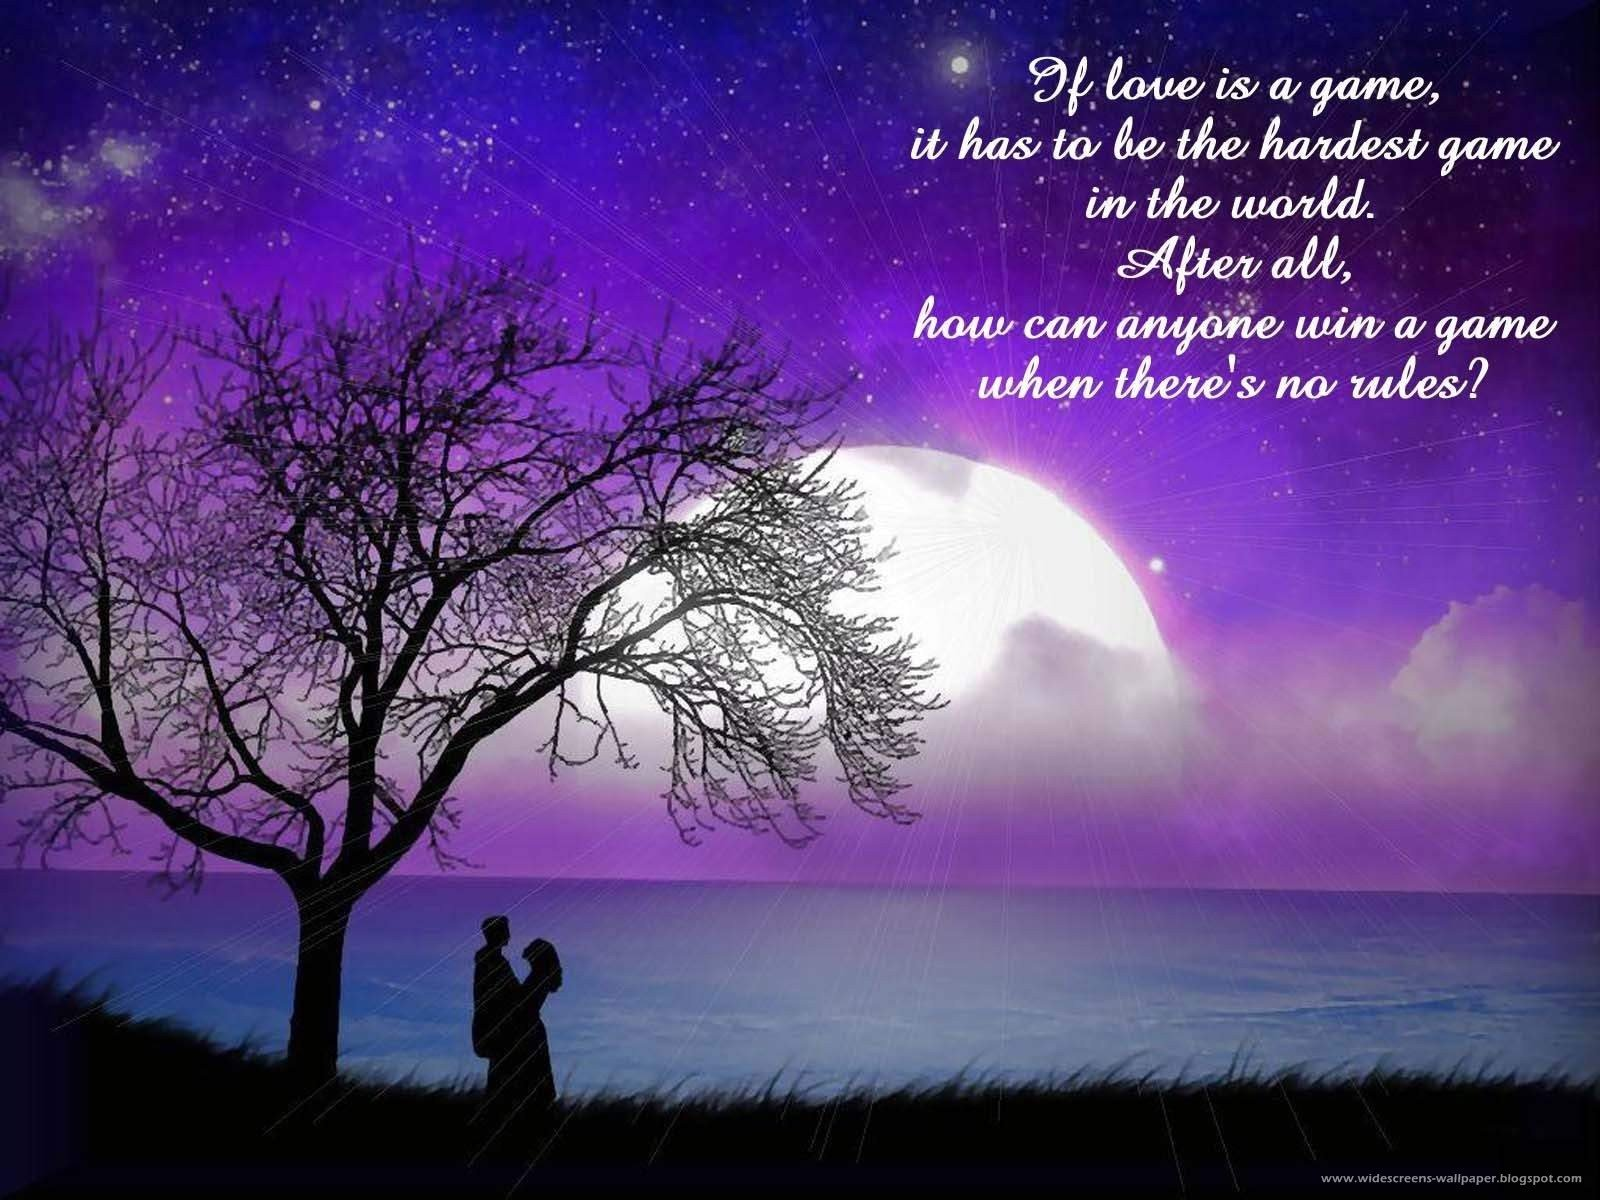 New Romantic Love Words And Quotations Wallpapers Wallpaper 1600x1200